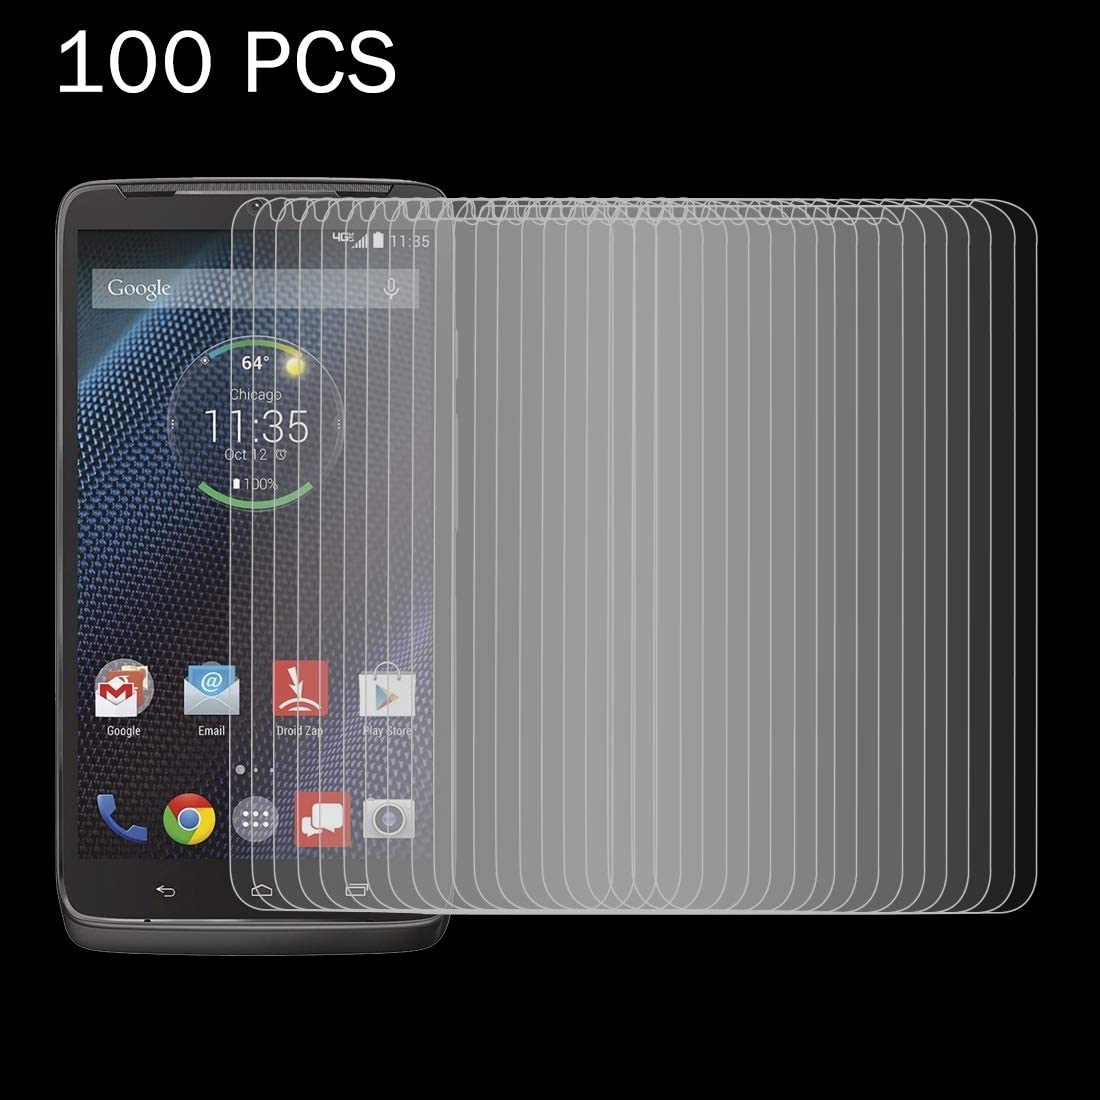 100 PCS for Motorola Droid Turbo YINZHI Screen Protector Film XT1254 0.26mm 9H Surface Hardness 2.5D Explosion-Proof Tempered Glass Screen Film Clear